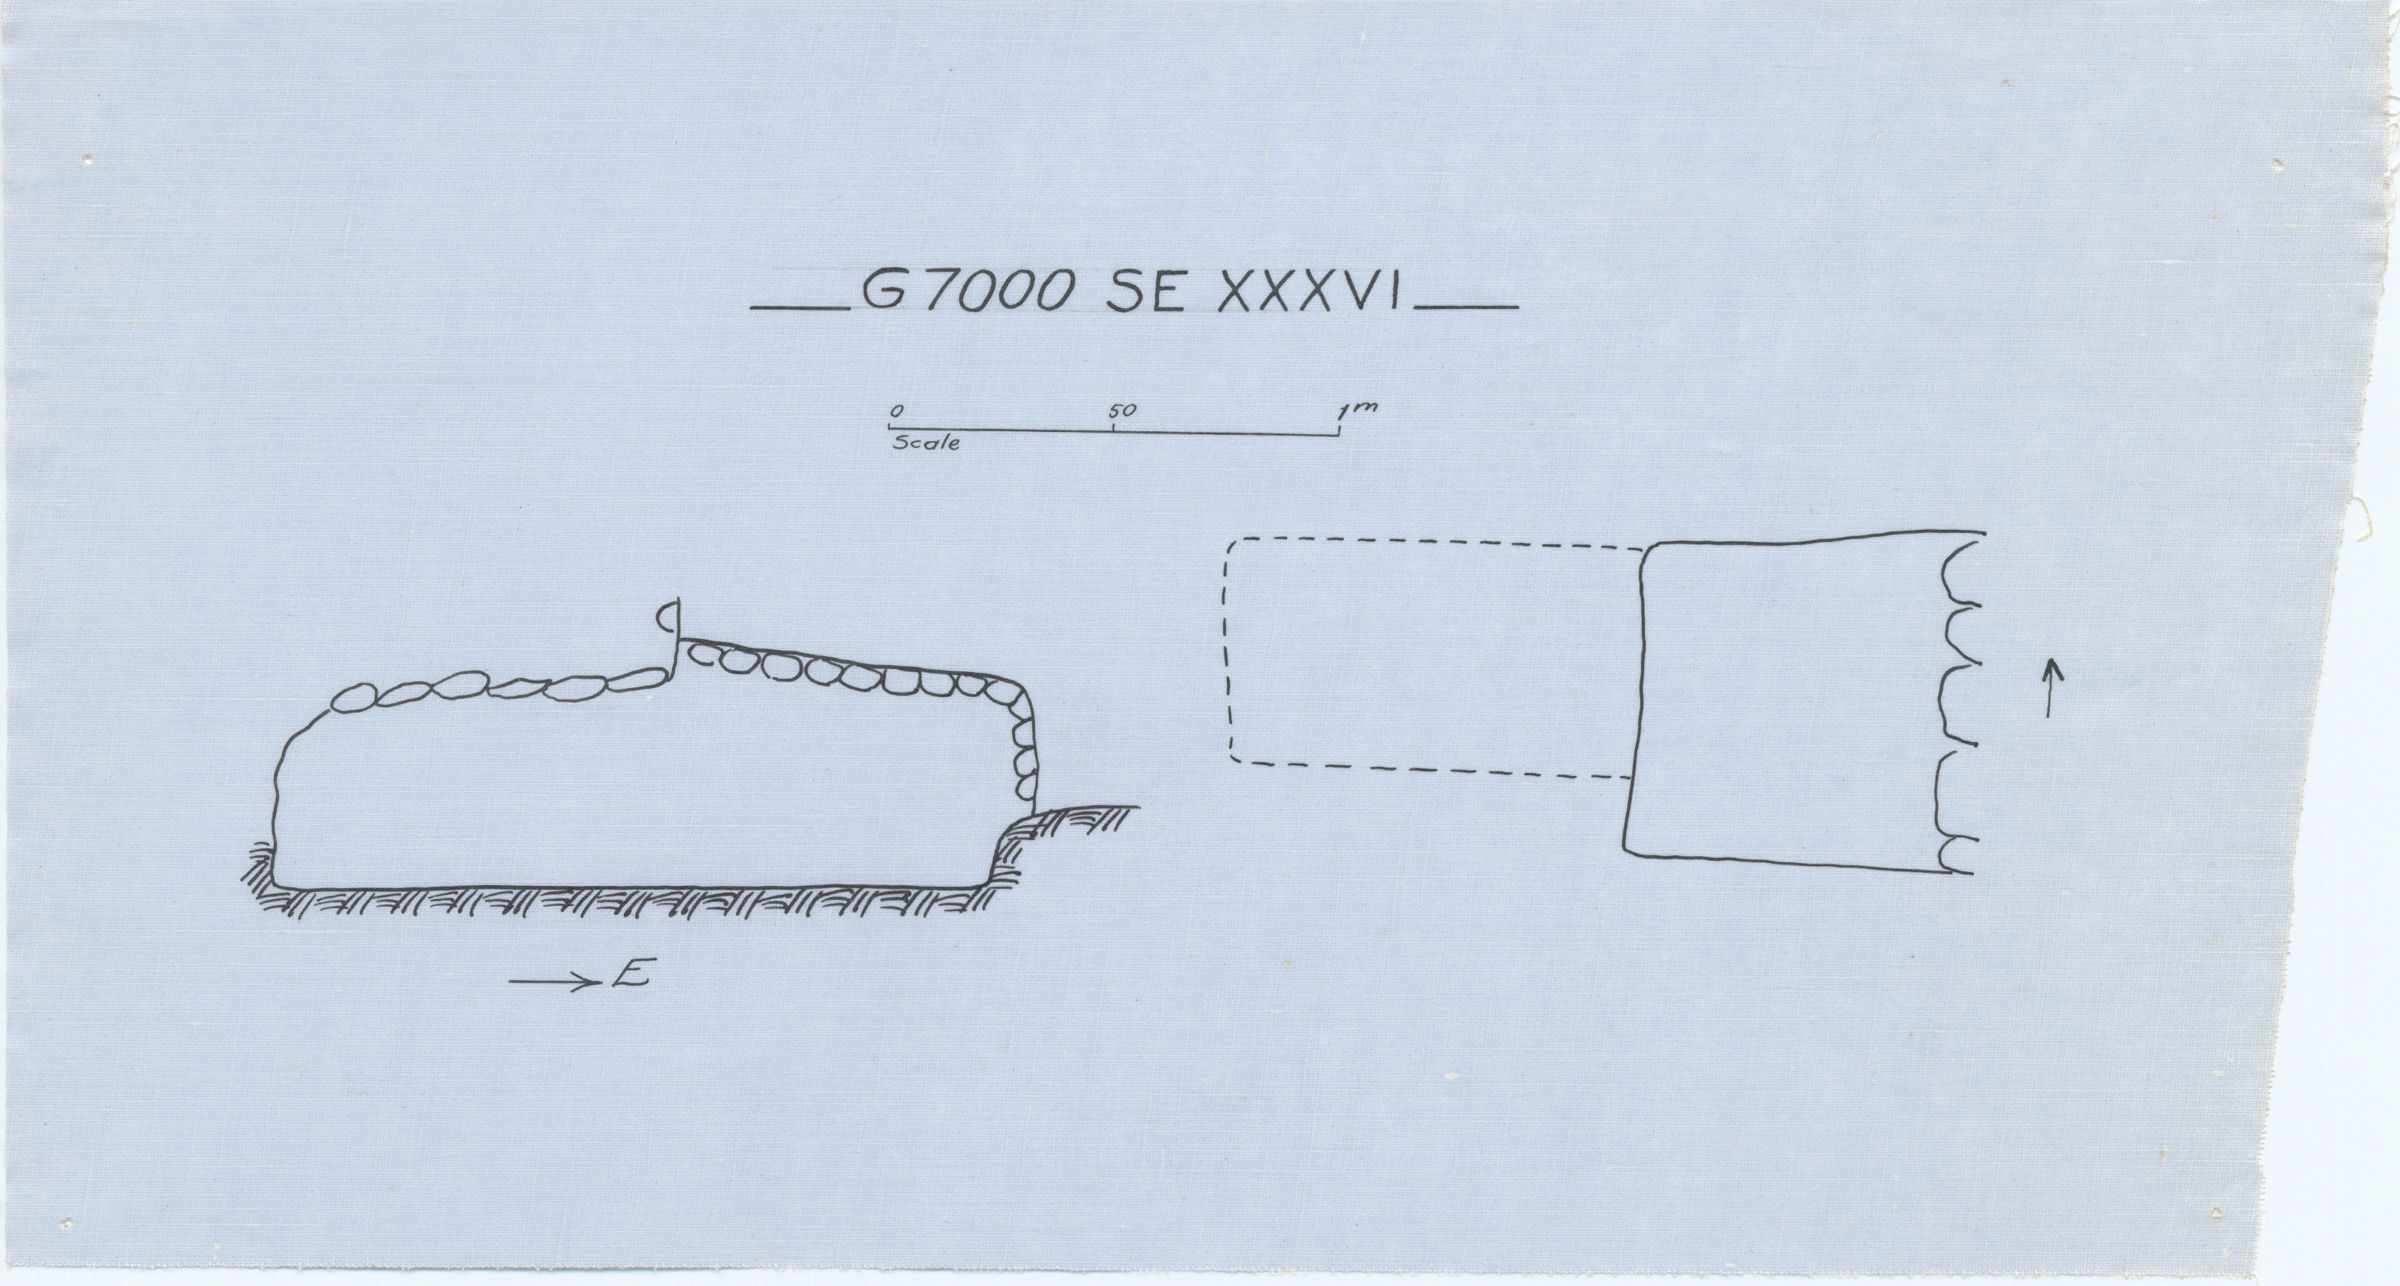 Maps and plans: G 7000 SE 36